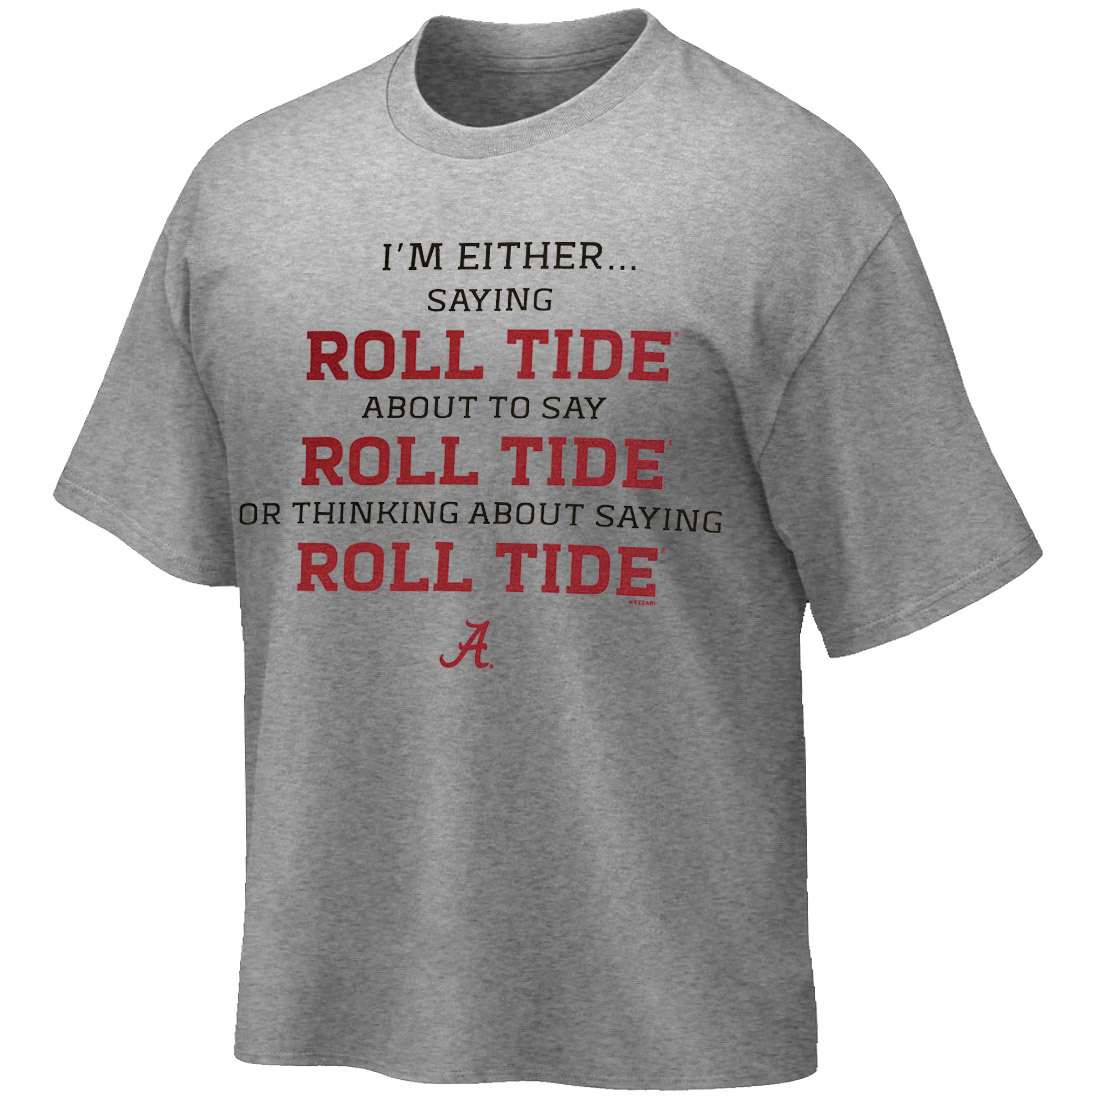 I'm Either Saying, About To, Or Thinking Roll Tide T-Shirt (SKU 13291587102)